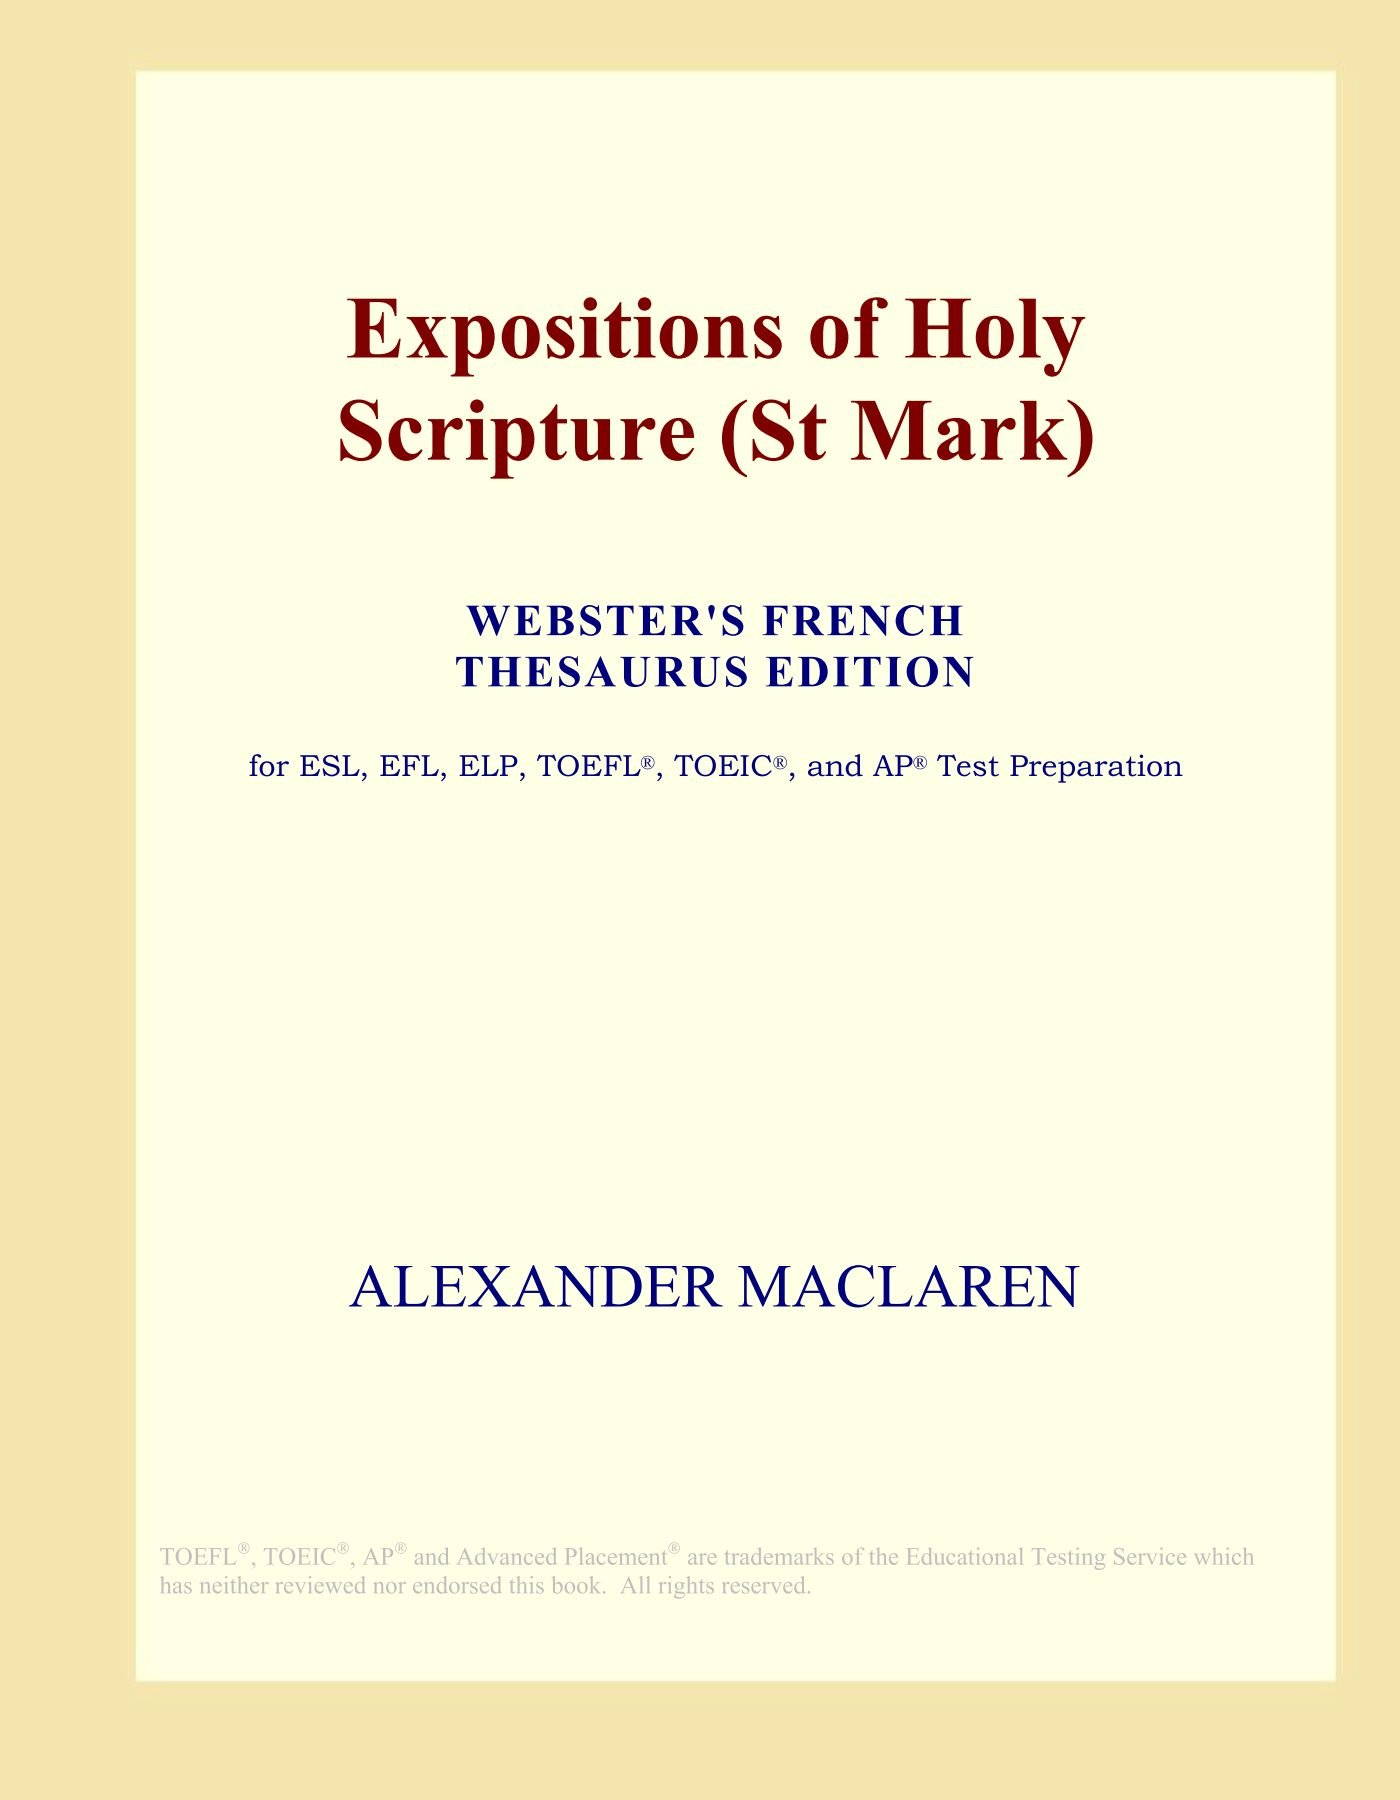 Expositions of Holy Scripture (St Mark) (Webster's French Thesaurus Edition) PDF